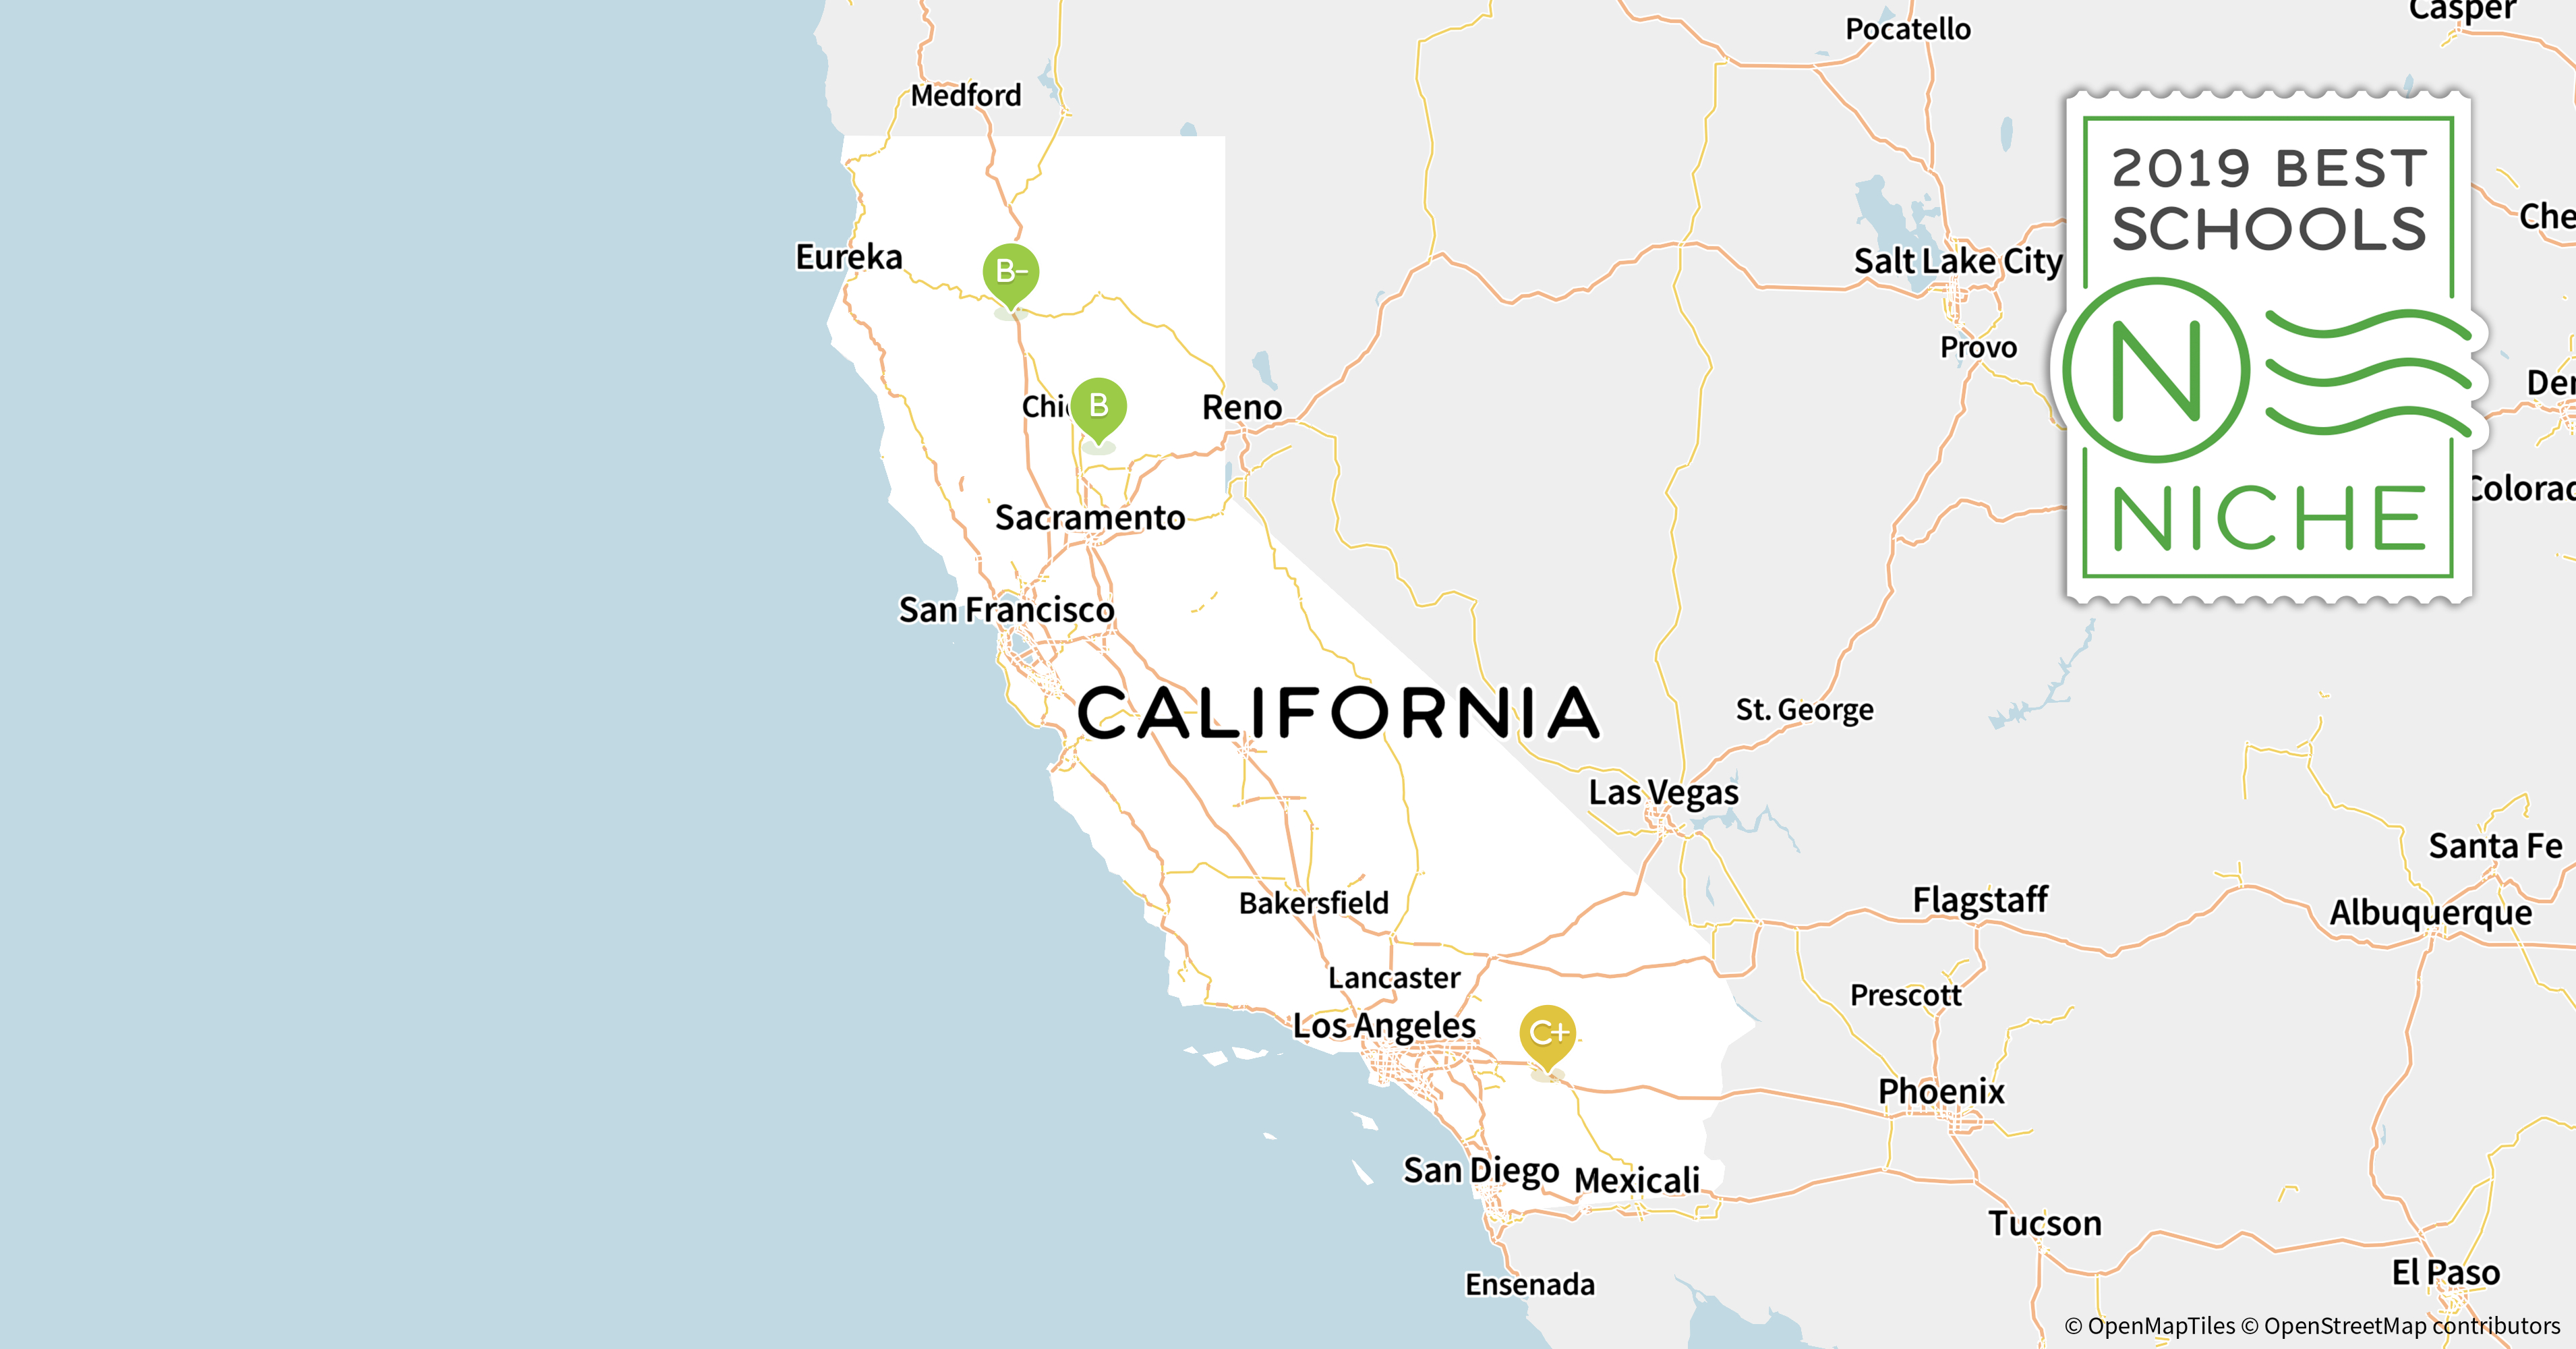 2019 Best School Districts In California - Niche - California School Districts Map